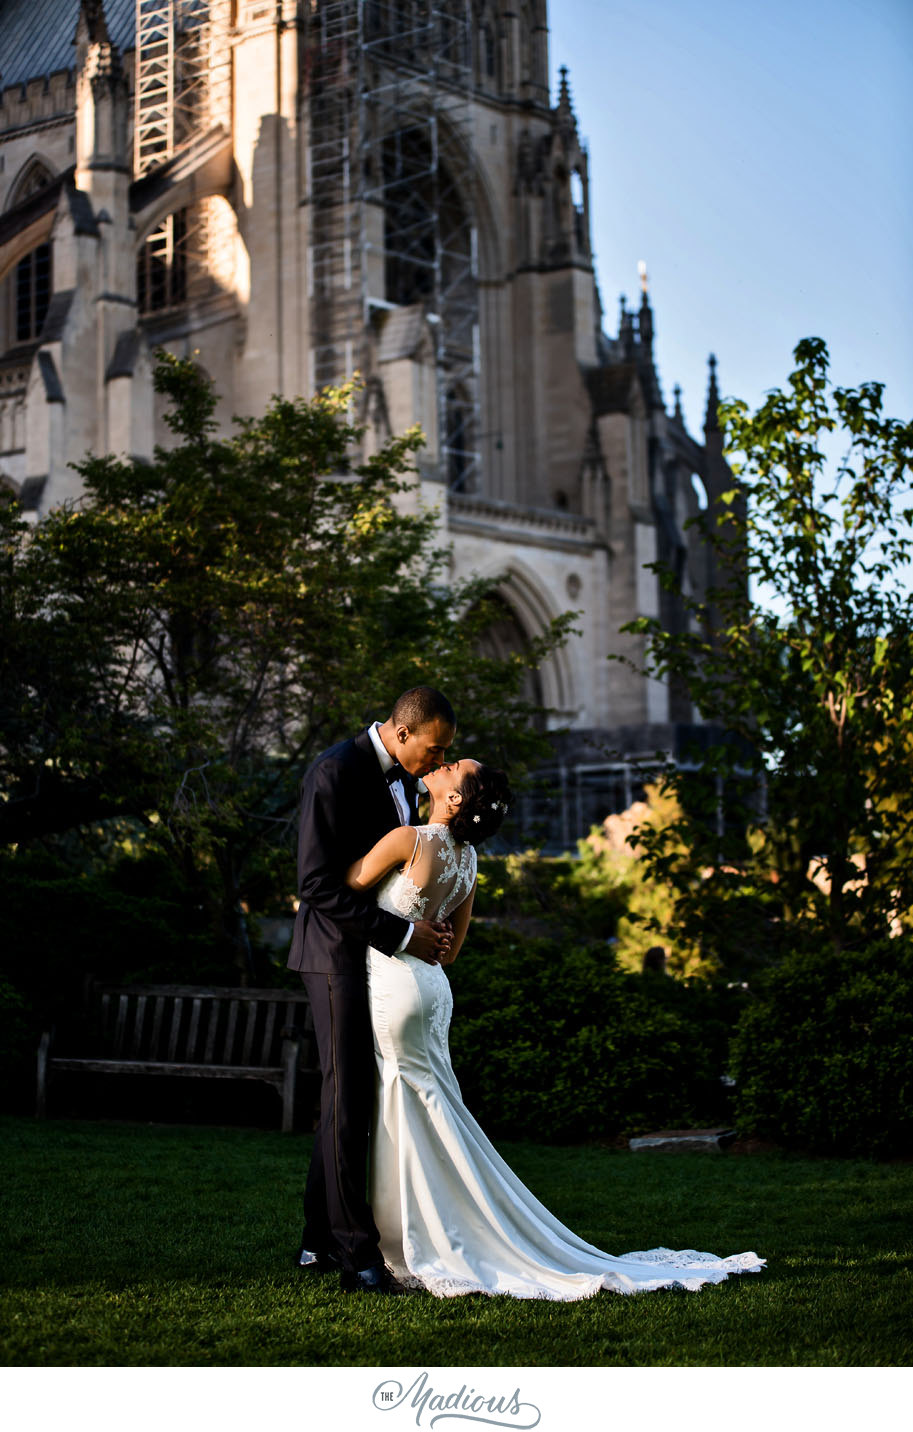 Fairmont Hotel DC Wedding 27.JPG